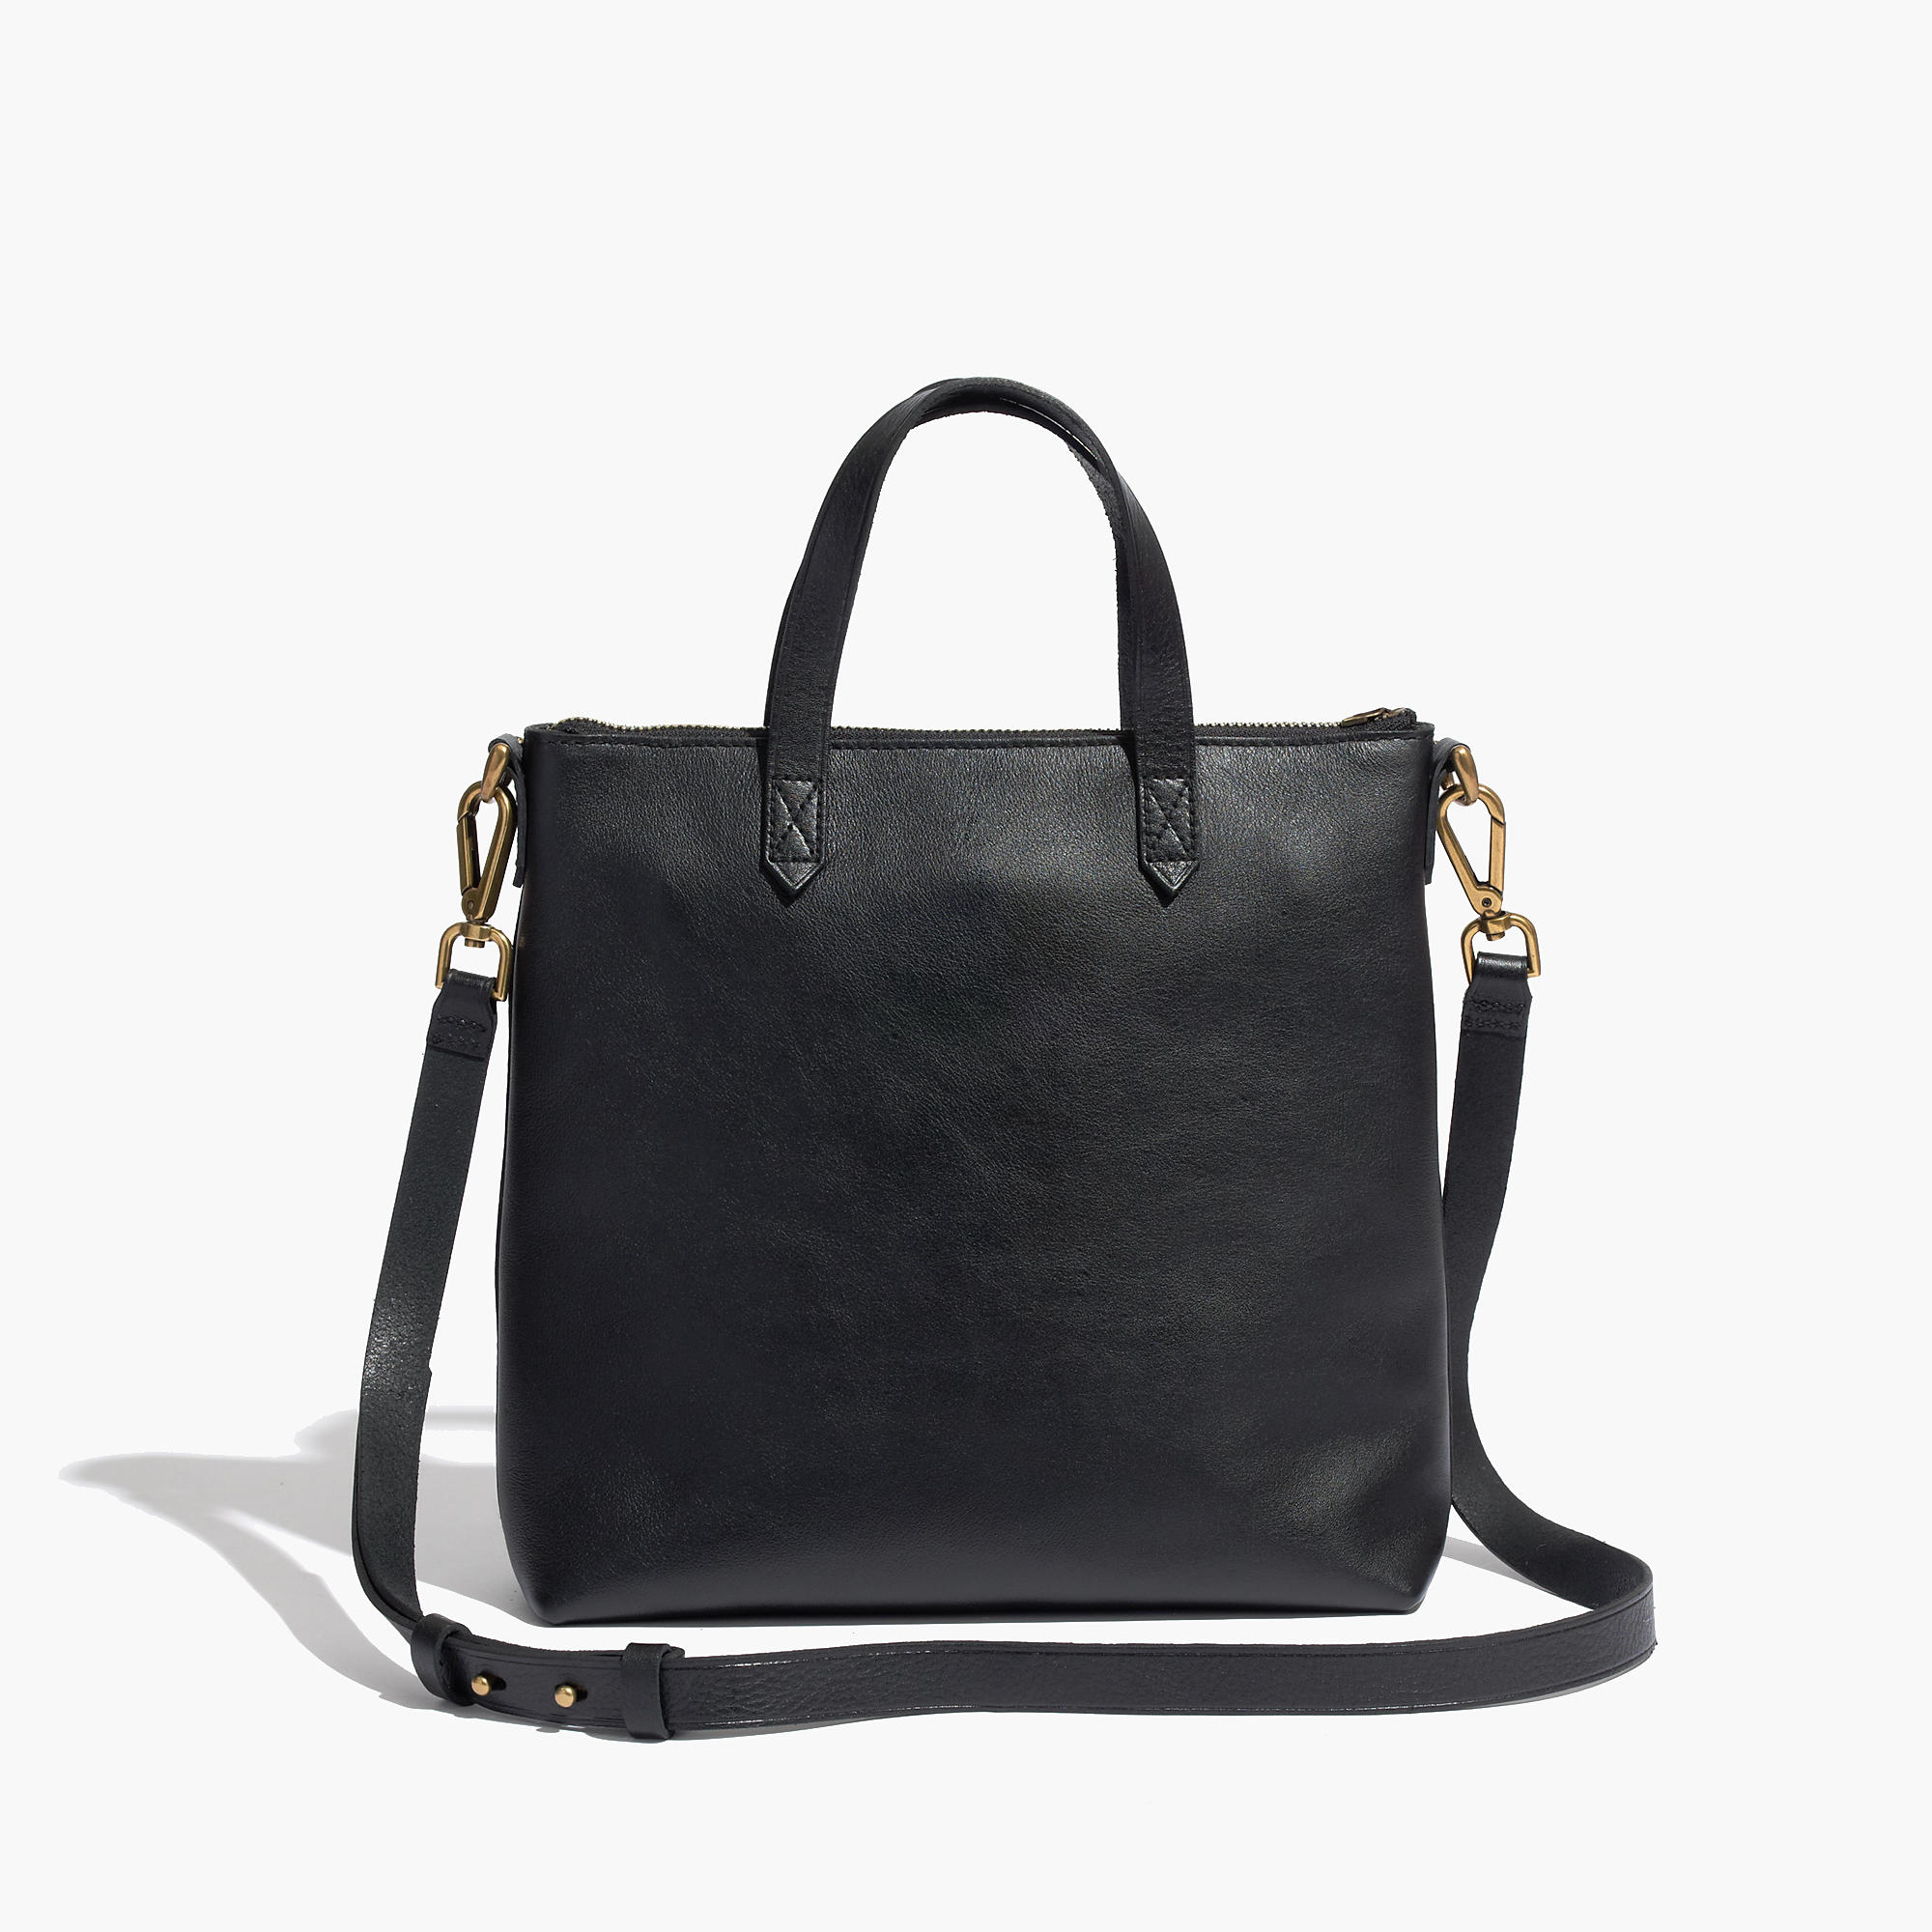 Madewell crossbody tote—15 wardrobe classics for $150 and under